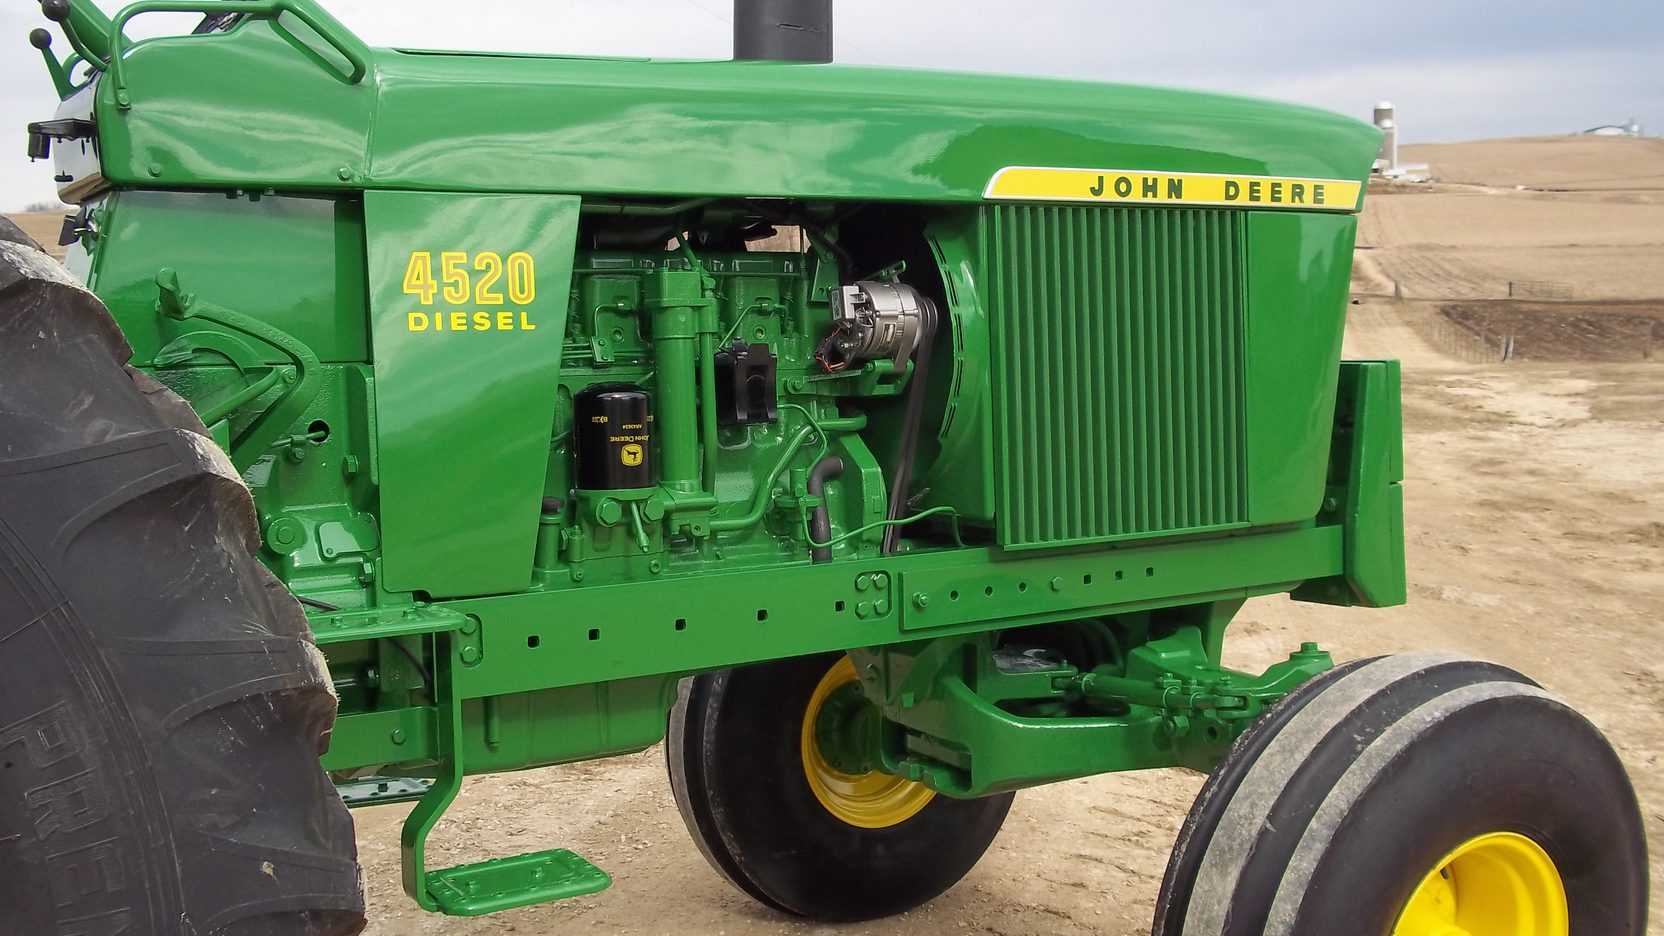 1969 john deere 4520 7 full screen [ 1664 x 936 Pixel ]